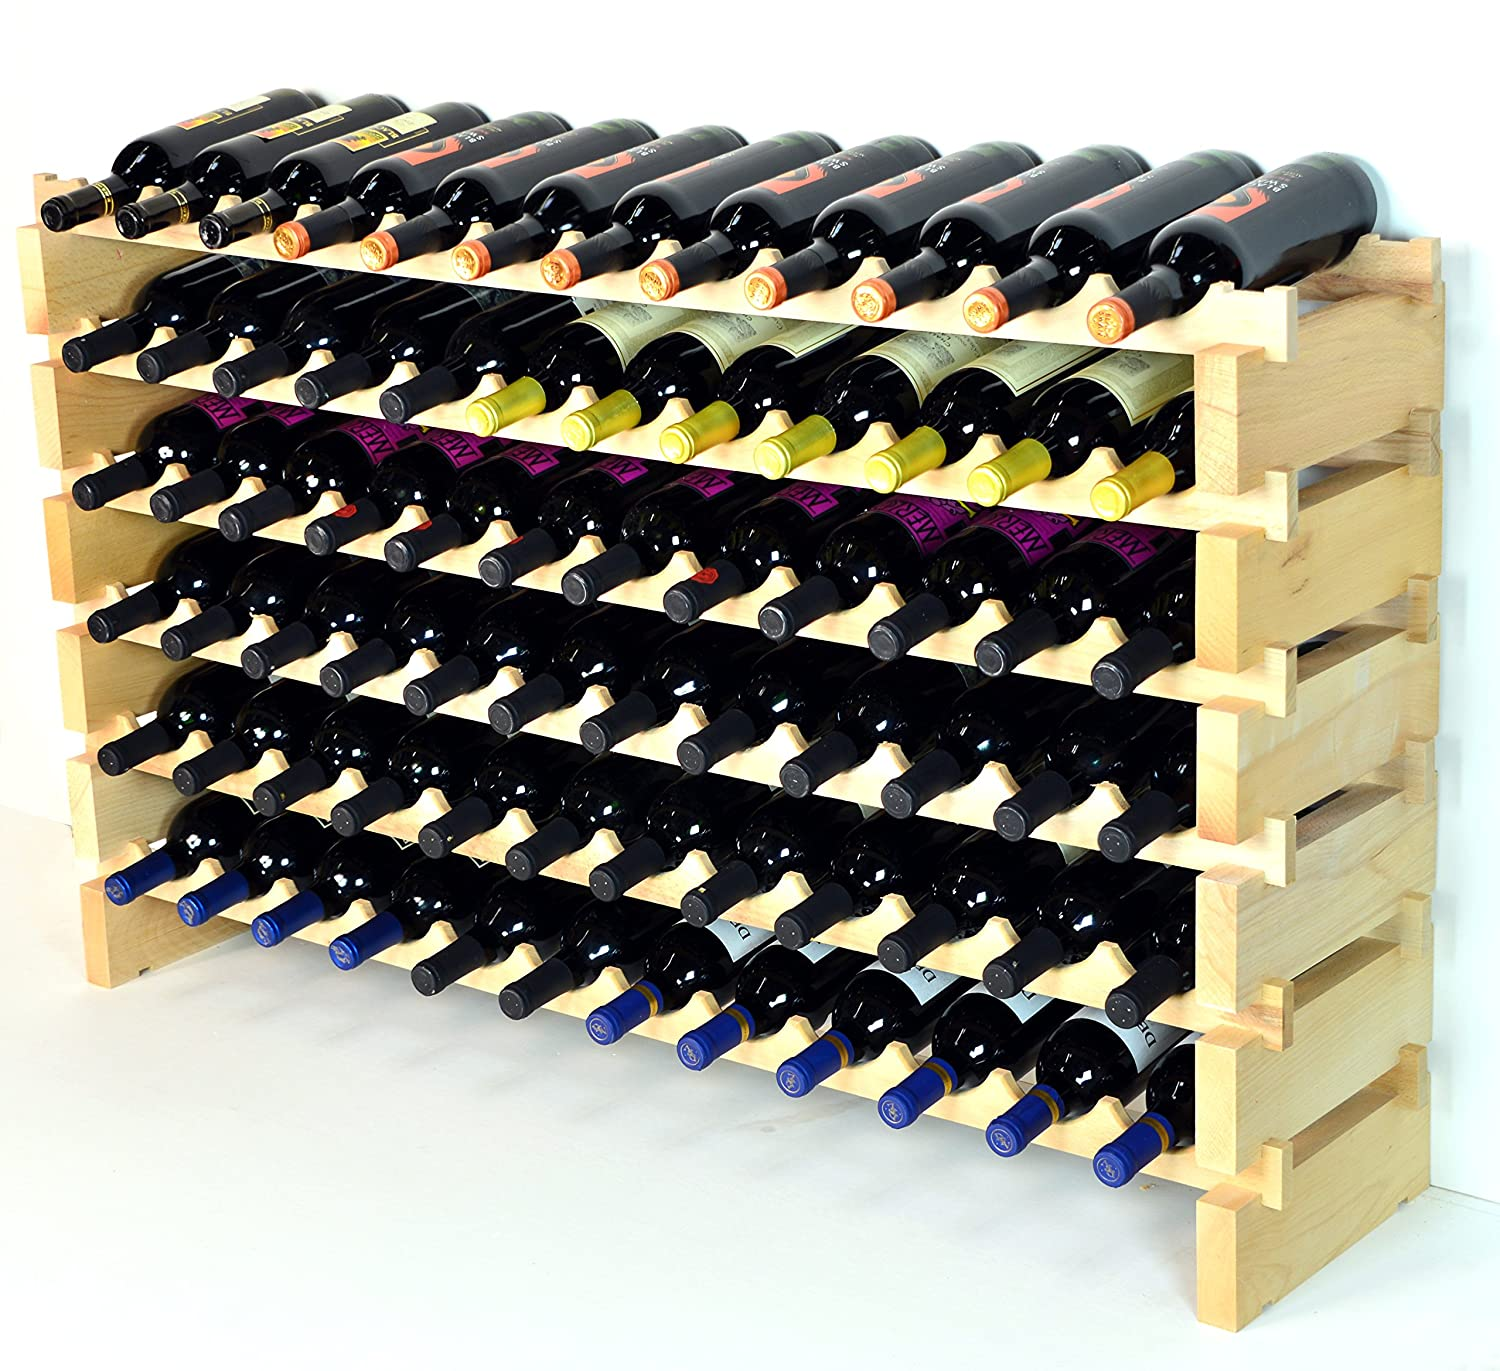 amazoncom stackable wine rack bottles modular hardwood wine  - amazoncom stackable wine rack bottles modular hardwood wine racksvery easy to put together kitchen  dining